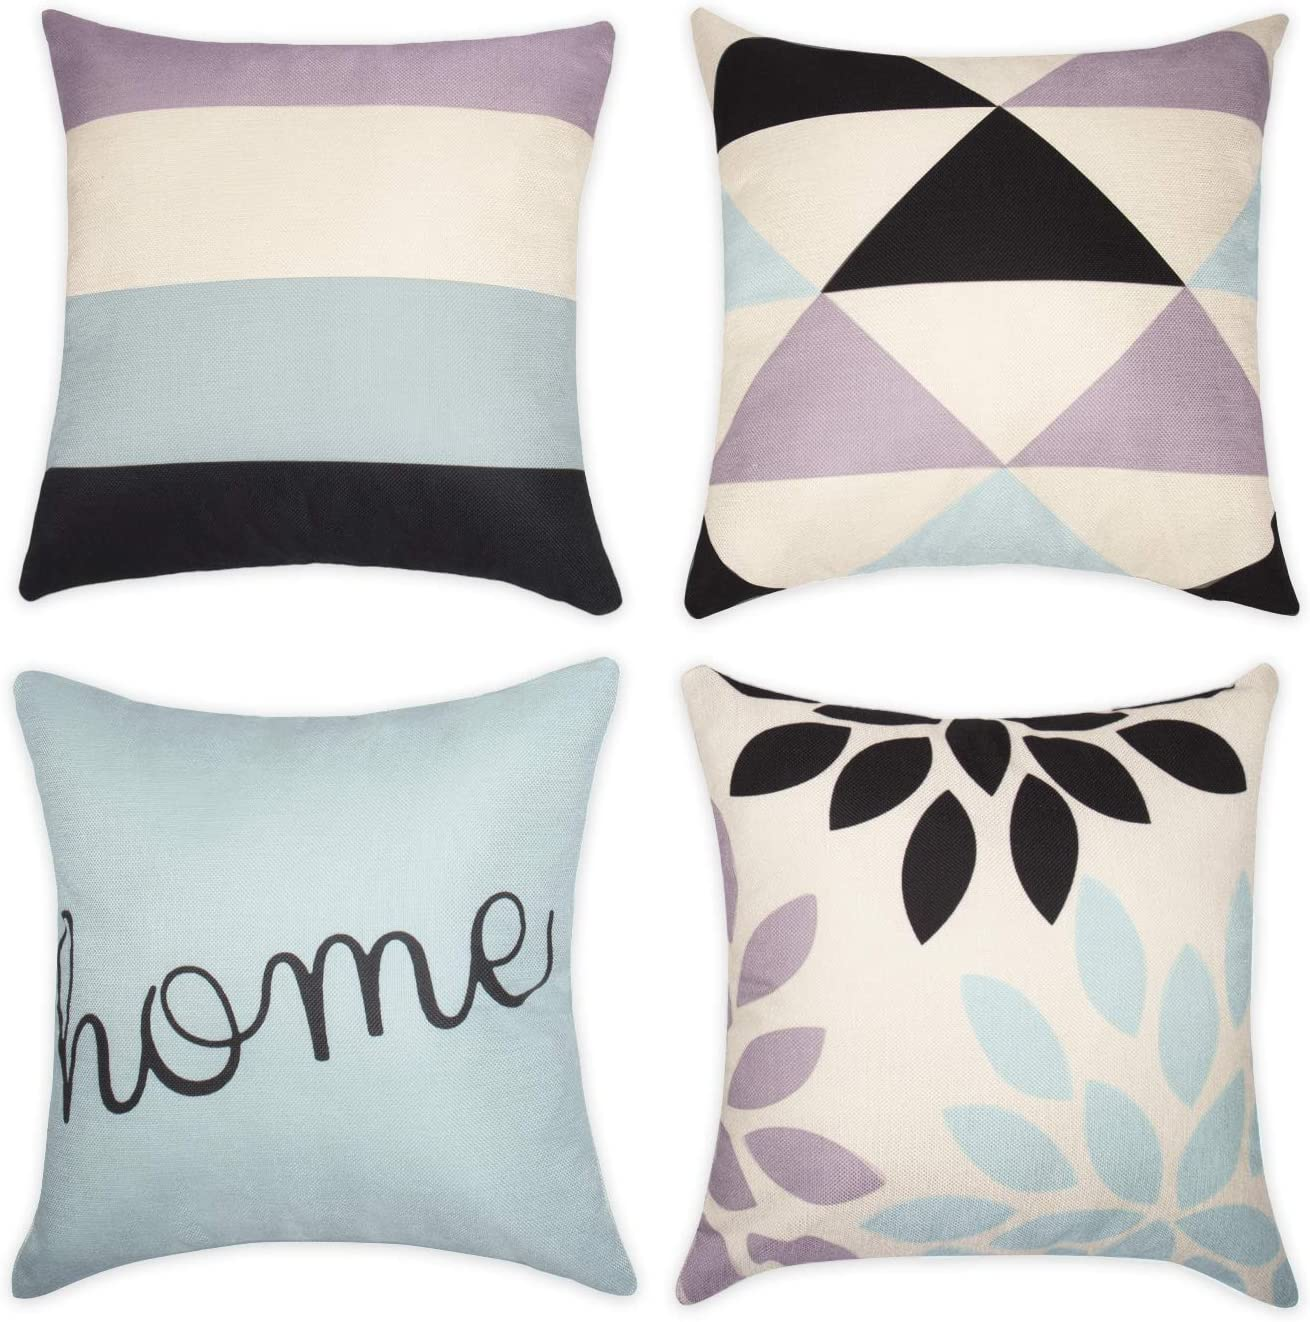 Set of 4 Cotton Decorative Cushion Covers for Sofa Bed Pillow Case Covers